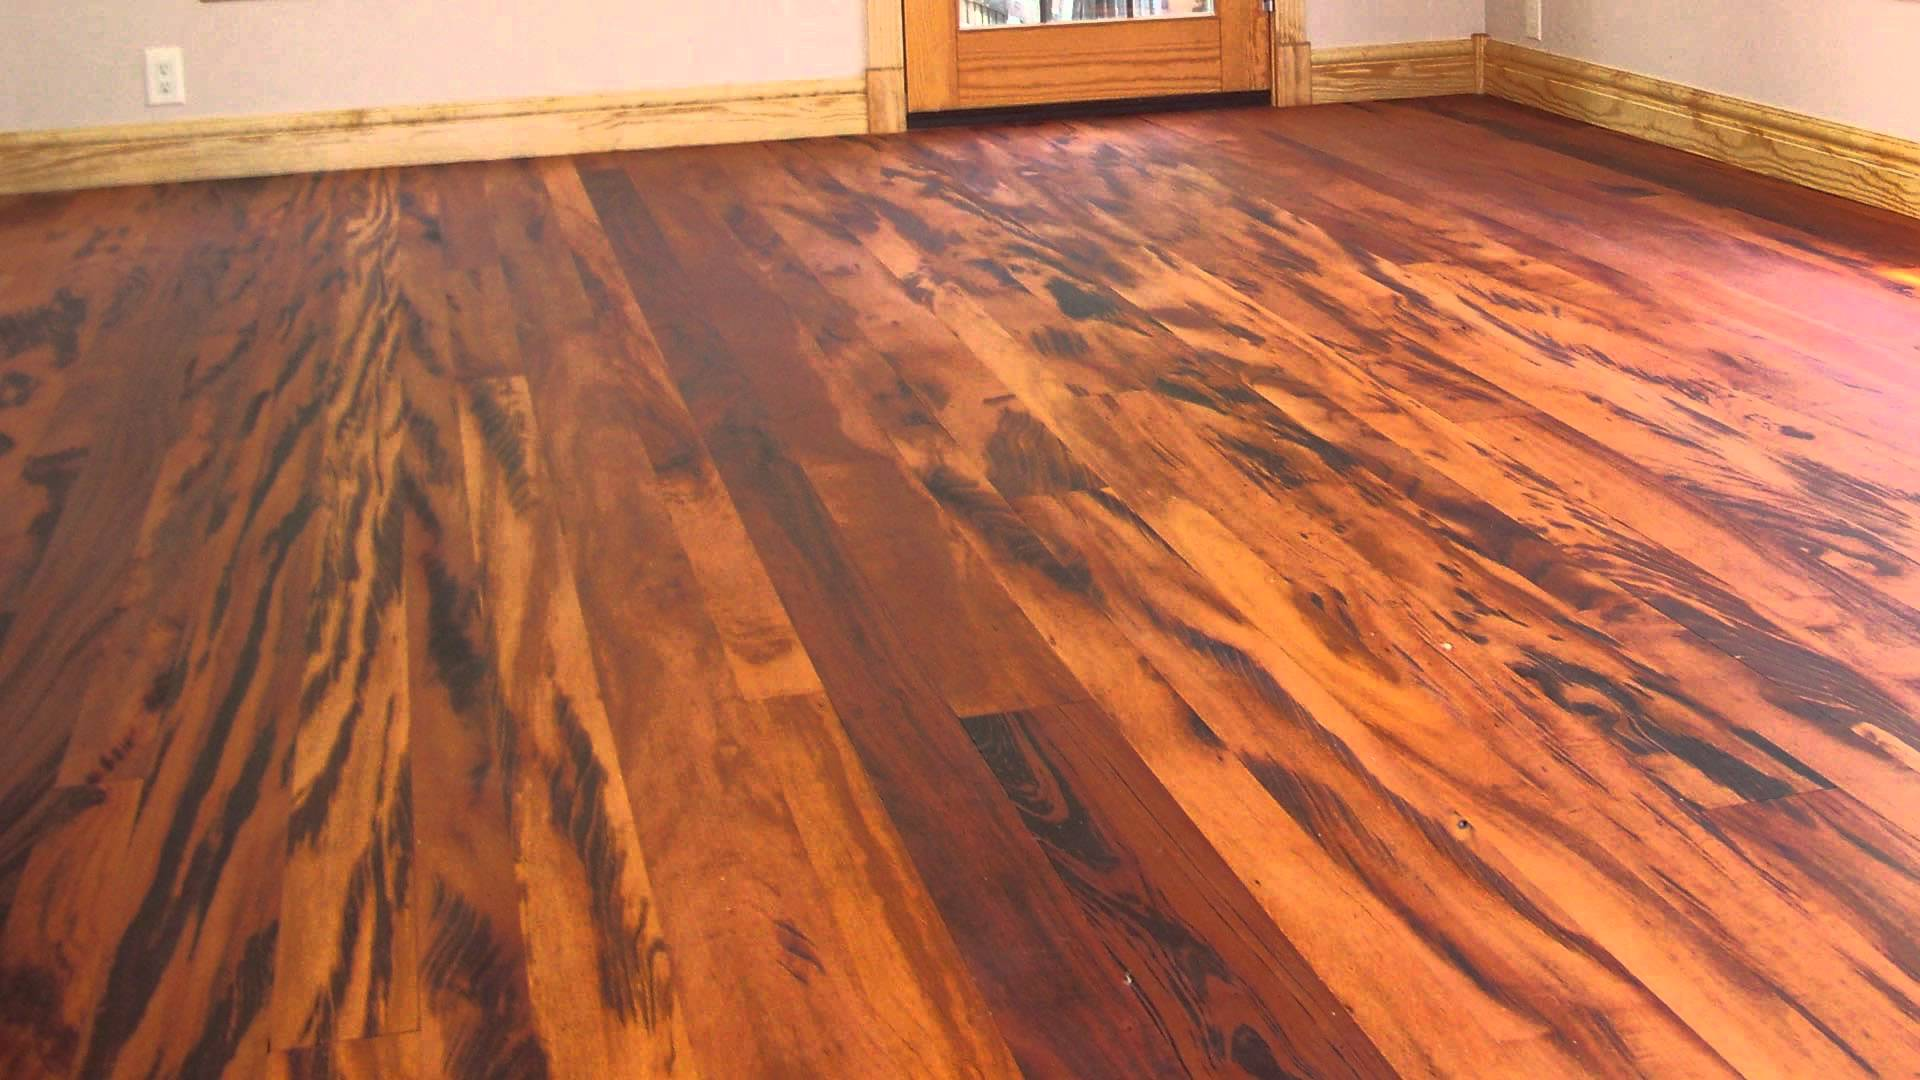 Out Of The Ordinary Exotic Hardwood Flooring Choices For Your Home